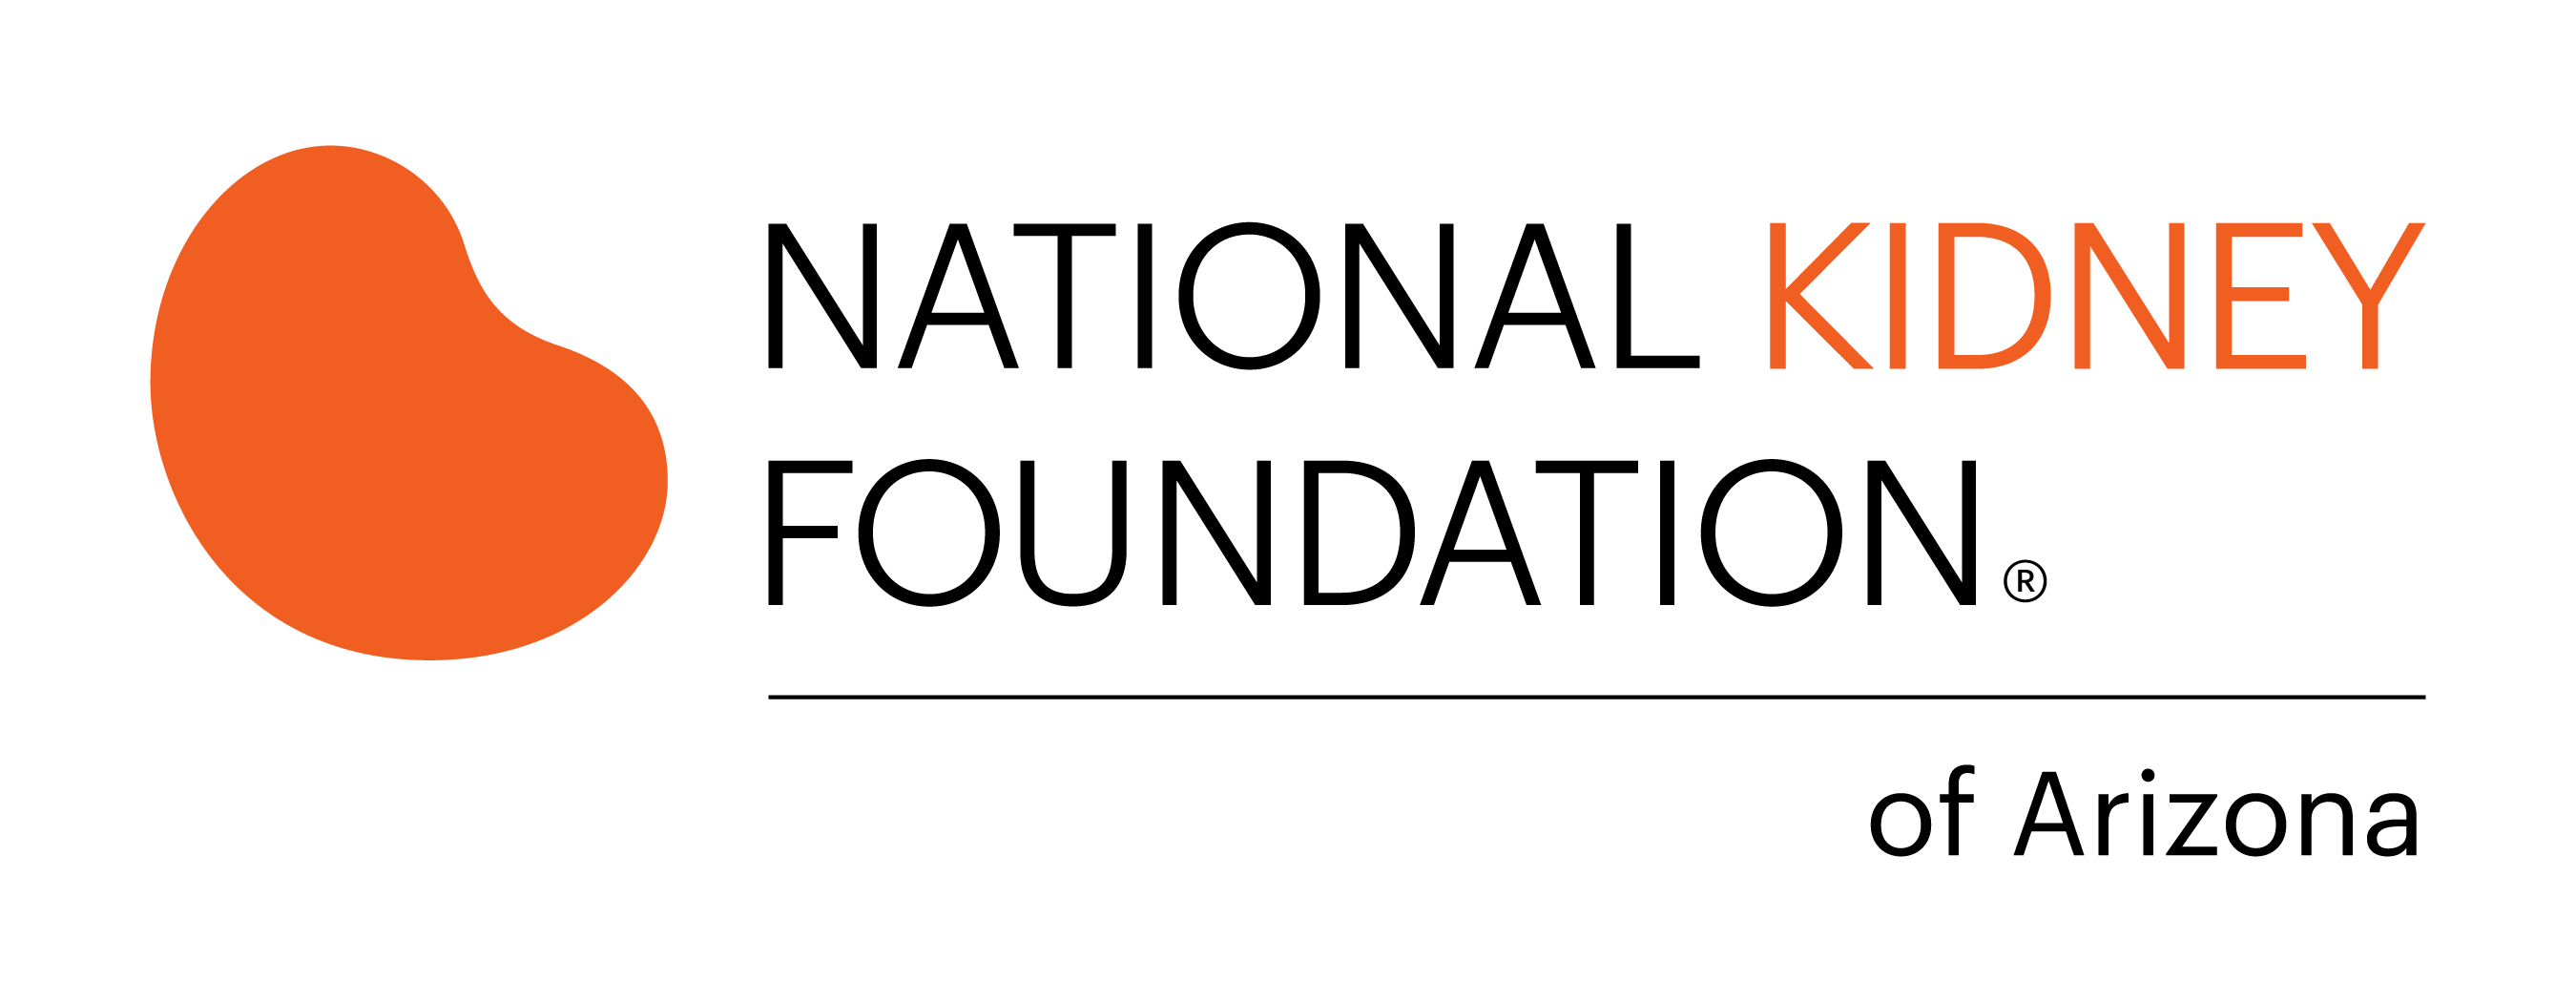 National Kidney Foundation of Arizona logo